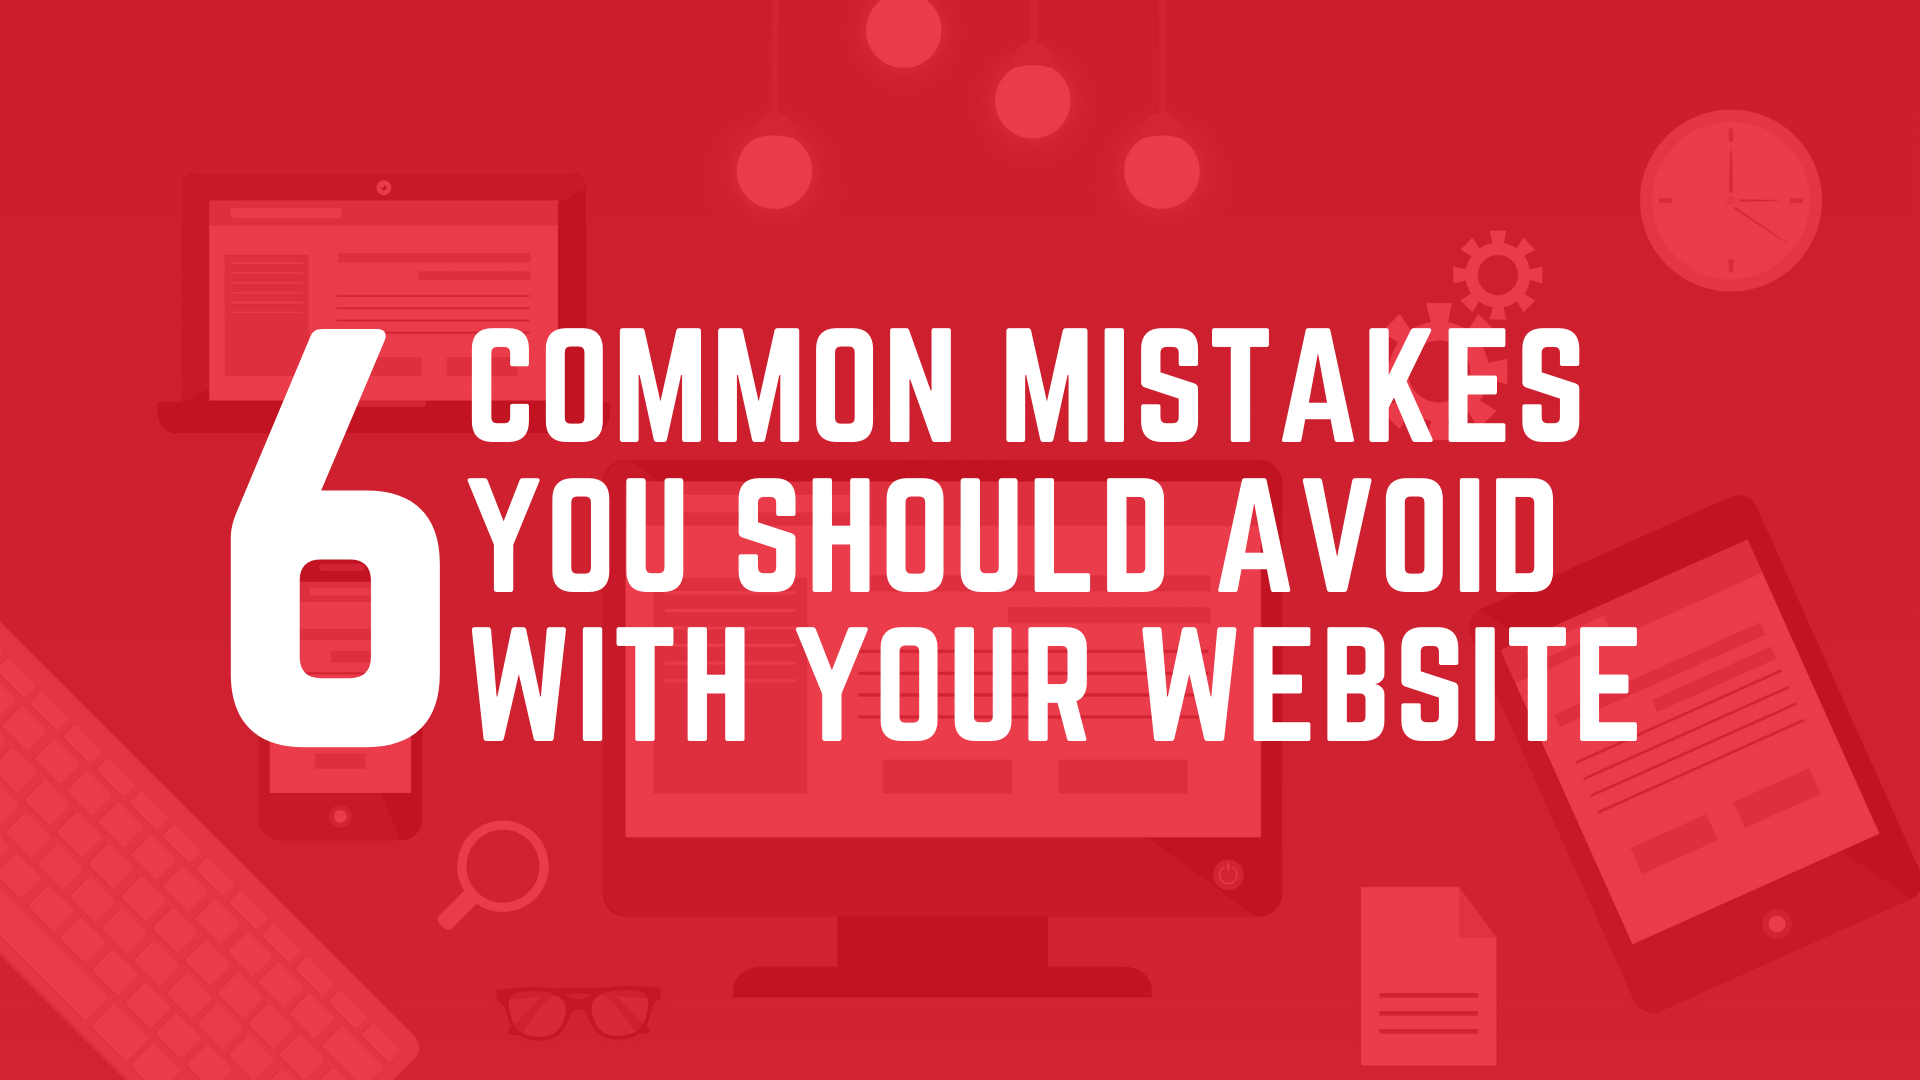 strong website, 6 common mistakes website, common website mistakes, avoid mistakes website, best websites, how to create a strong website, common website problems